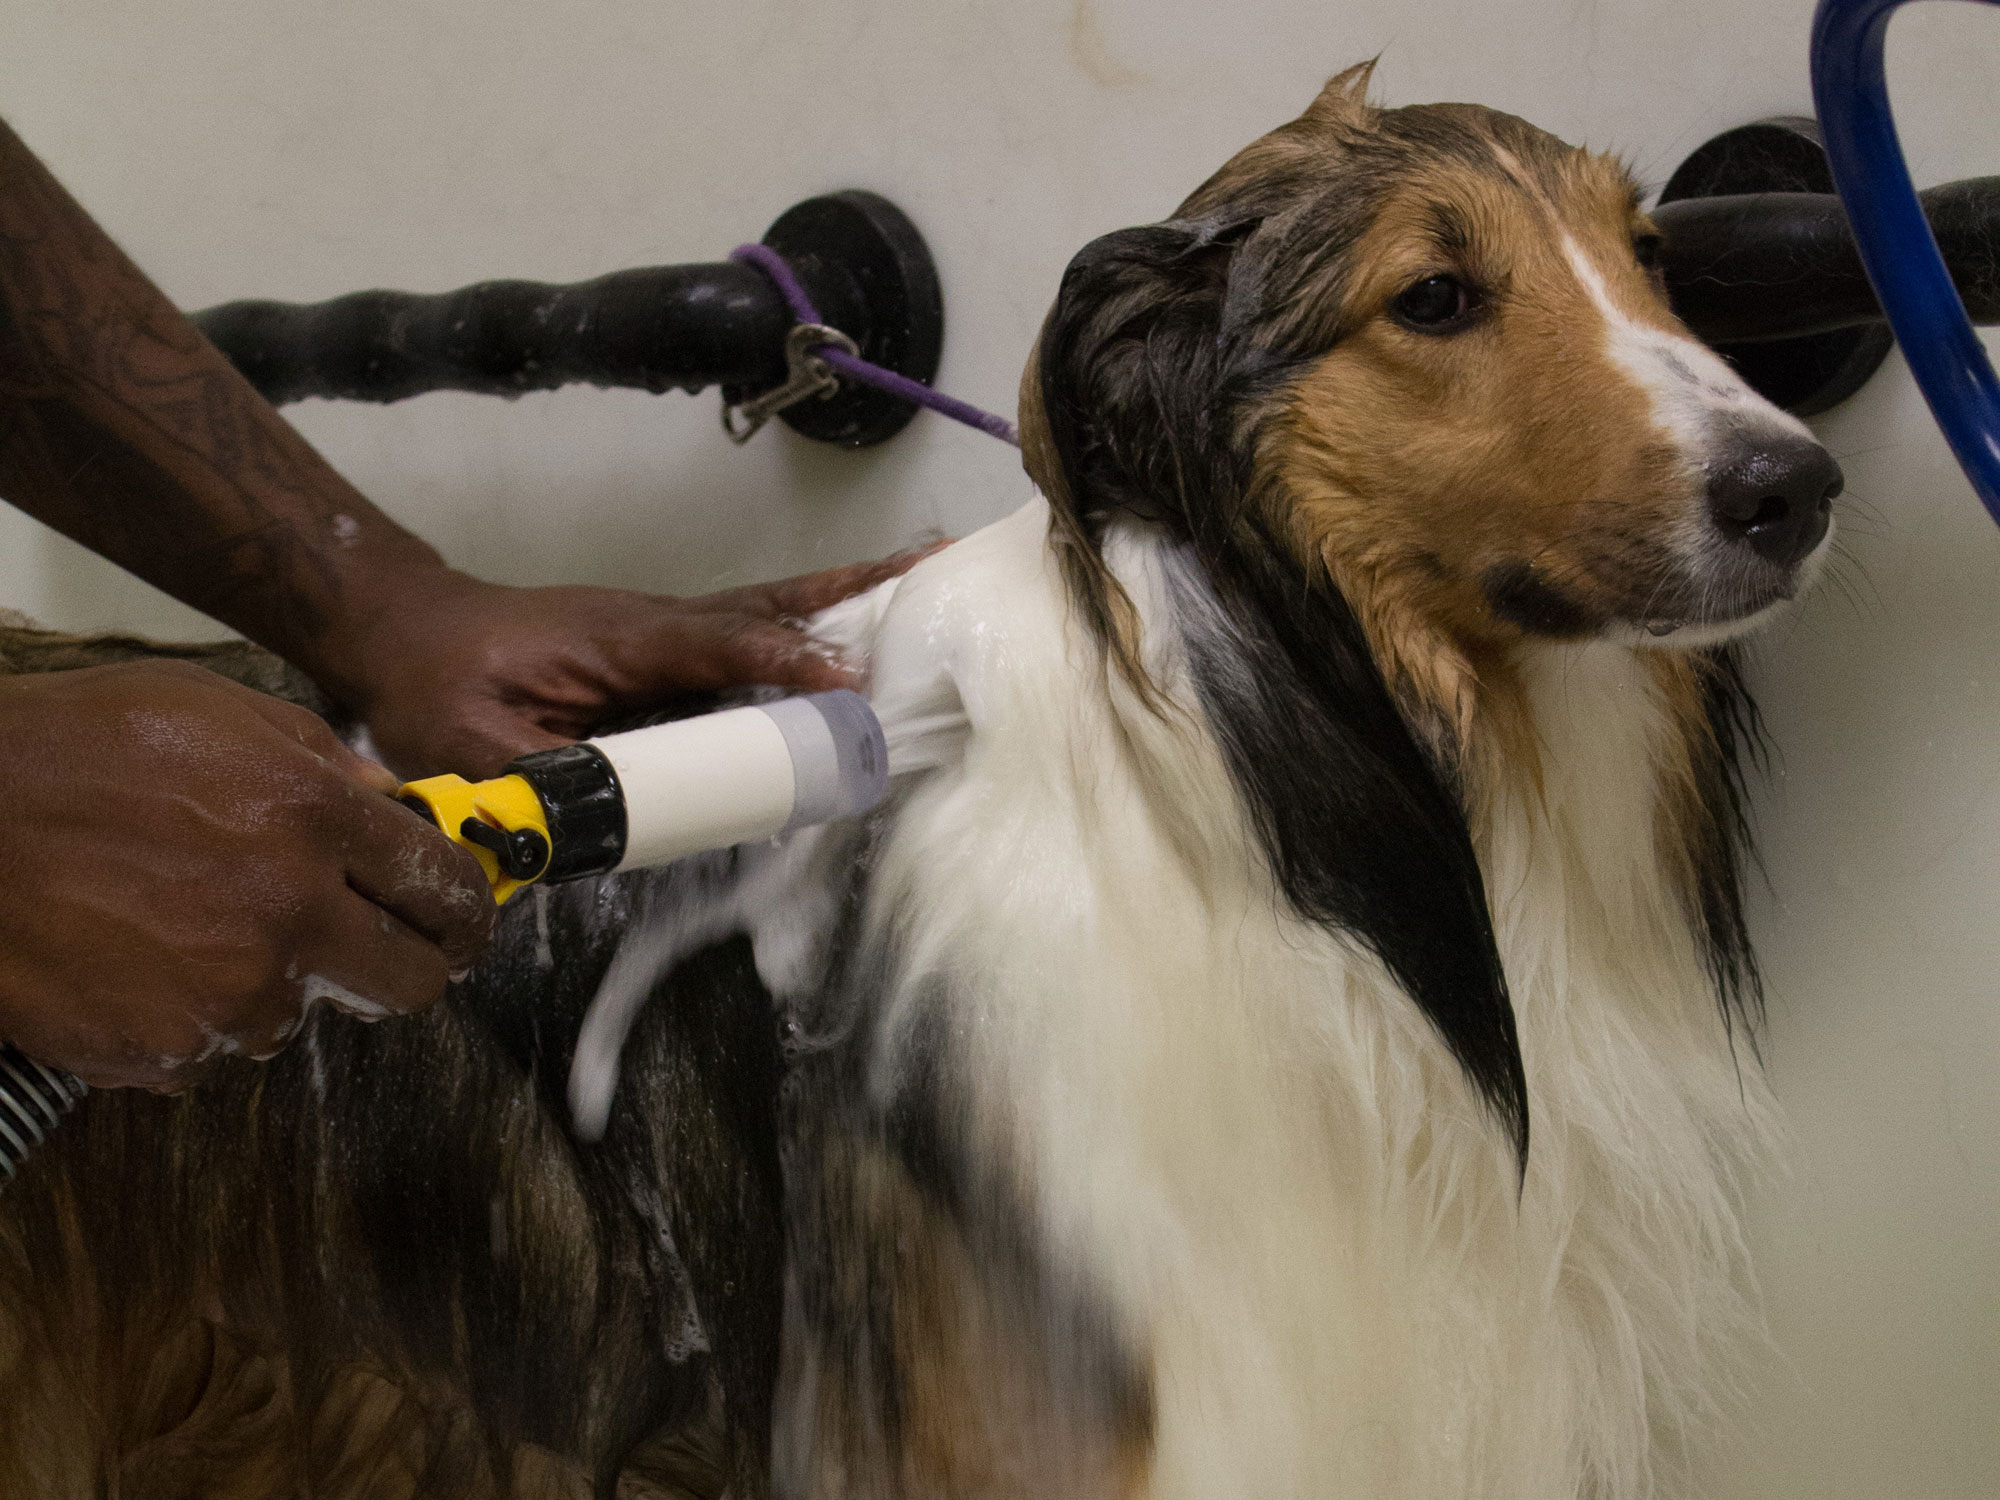 Pet Groomer - Bath and Brush at Kennelwood Pet Resorts